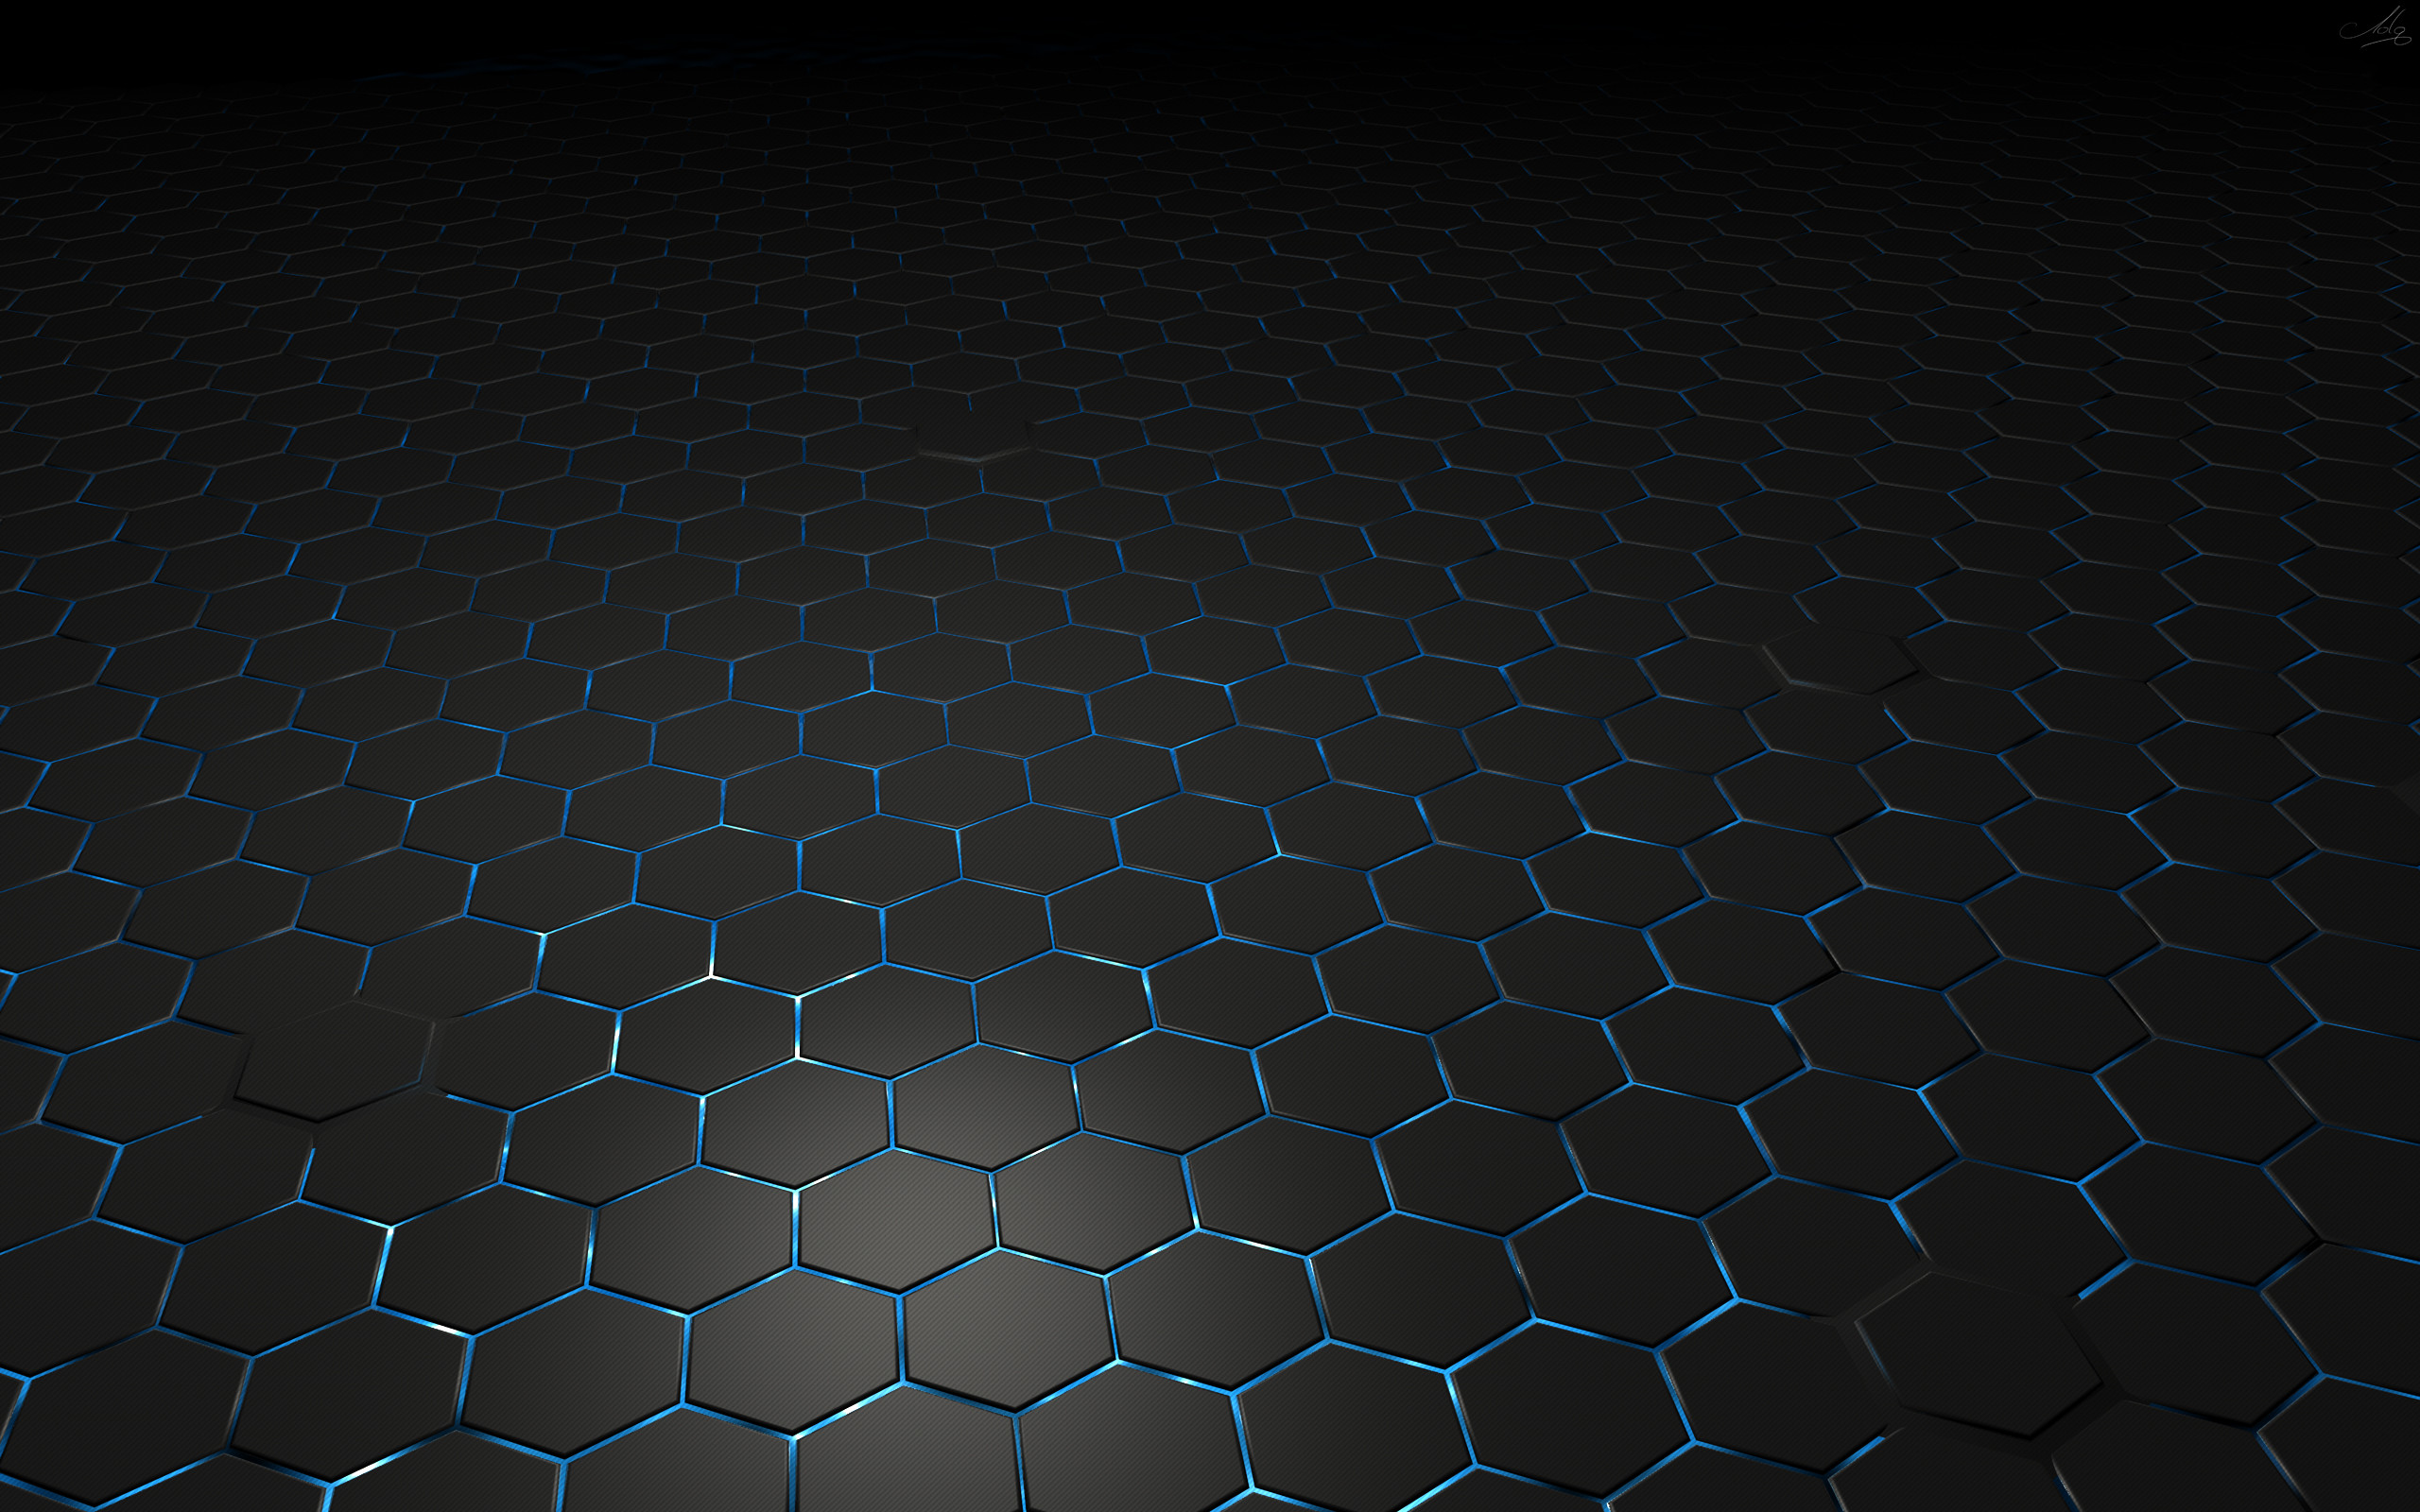 2560x1600 Hexagon Widescreen Wallpaper